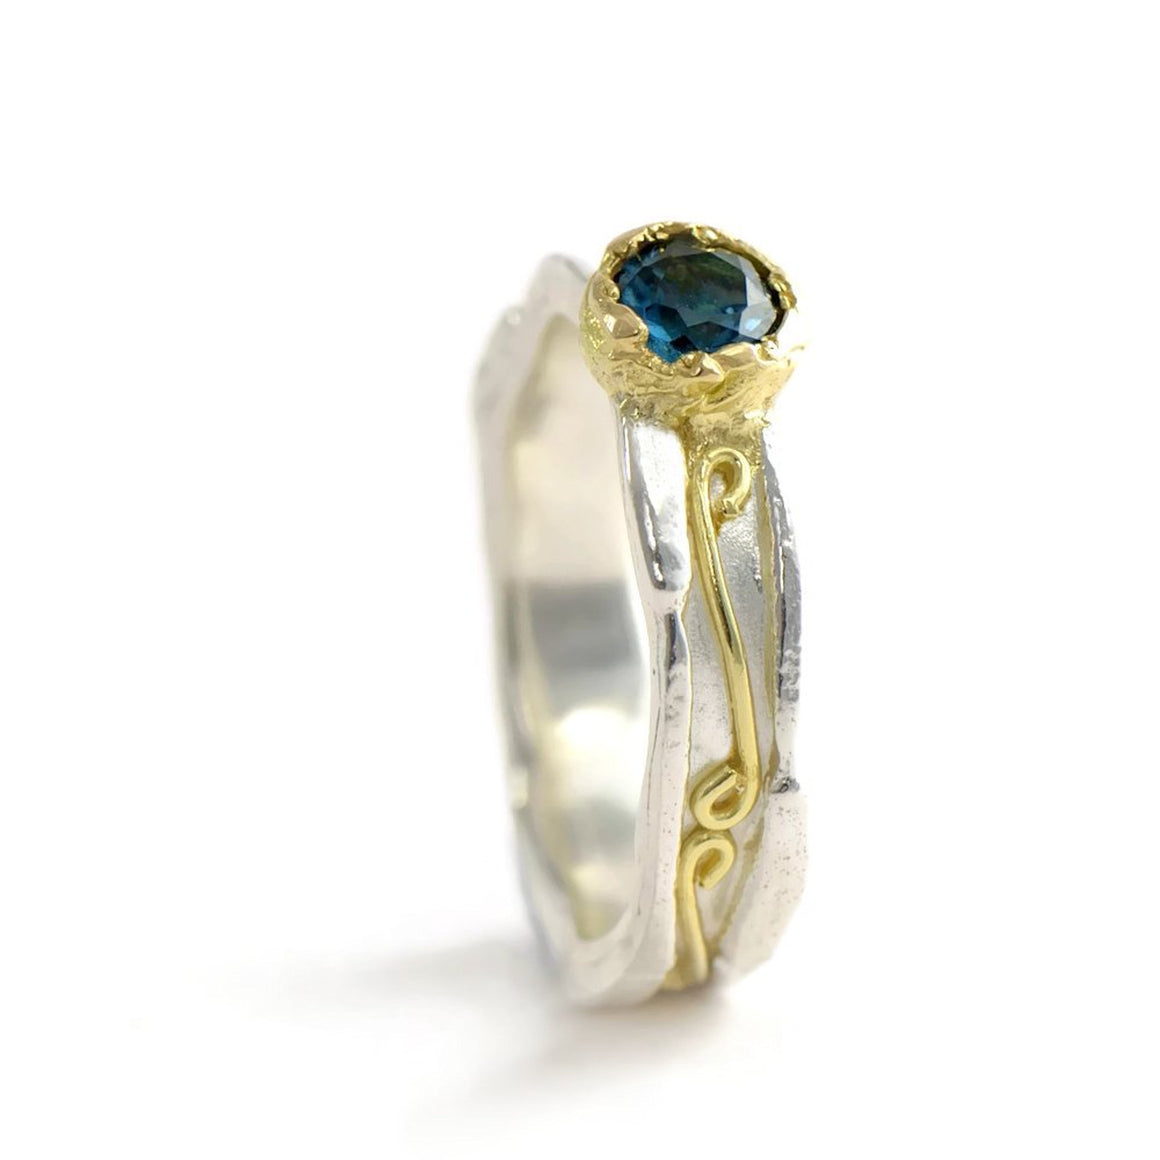 18 ct gold and silver patterned ring, 5 mm wide with 4.5 mm round gemstone